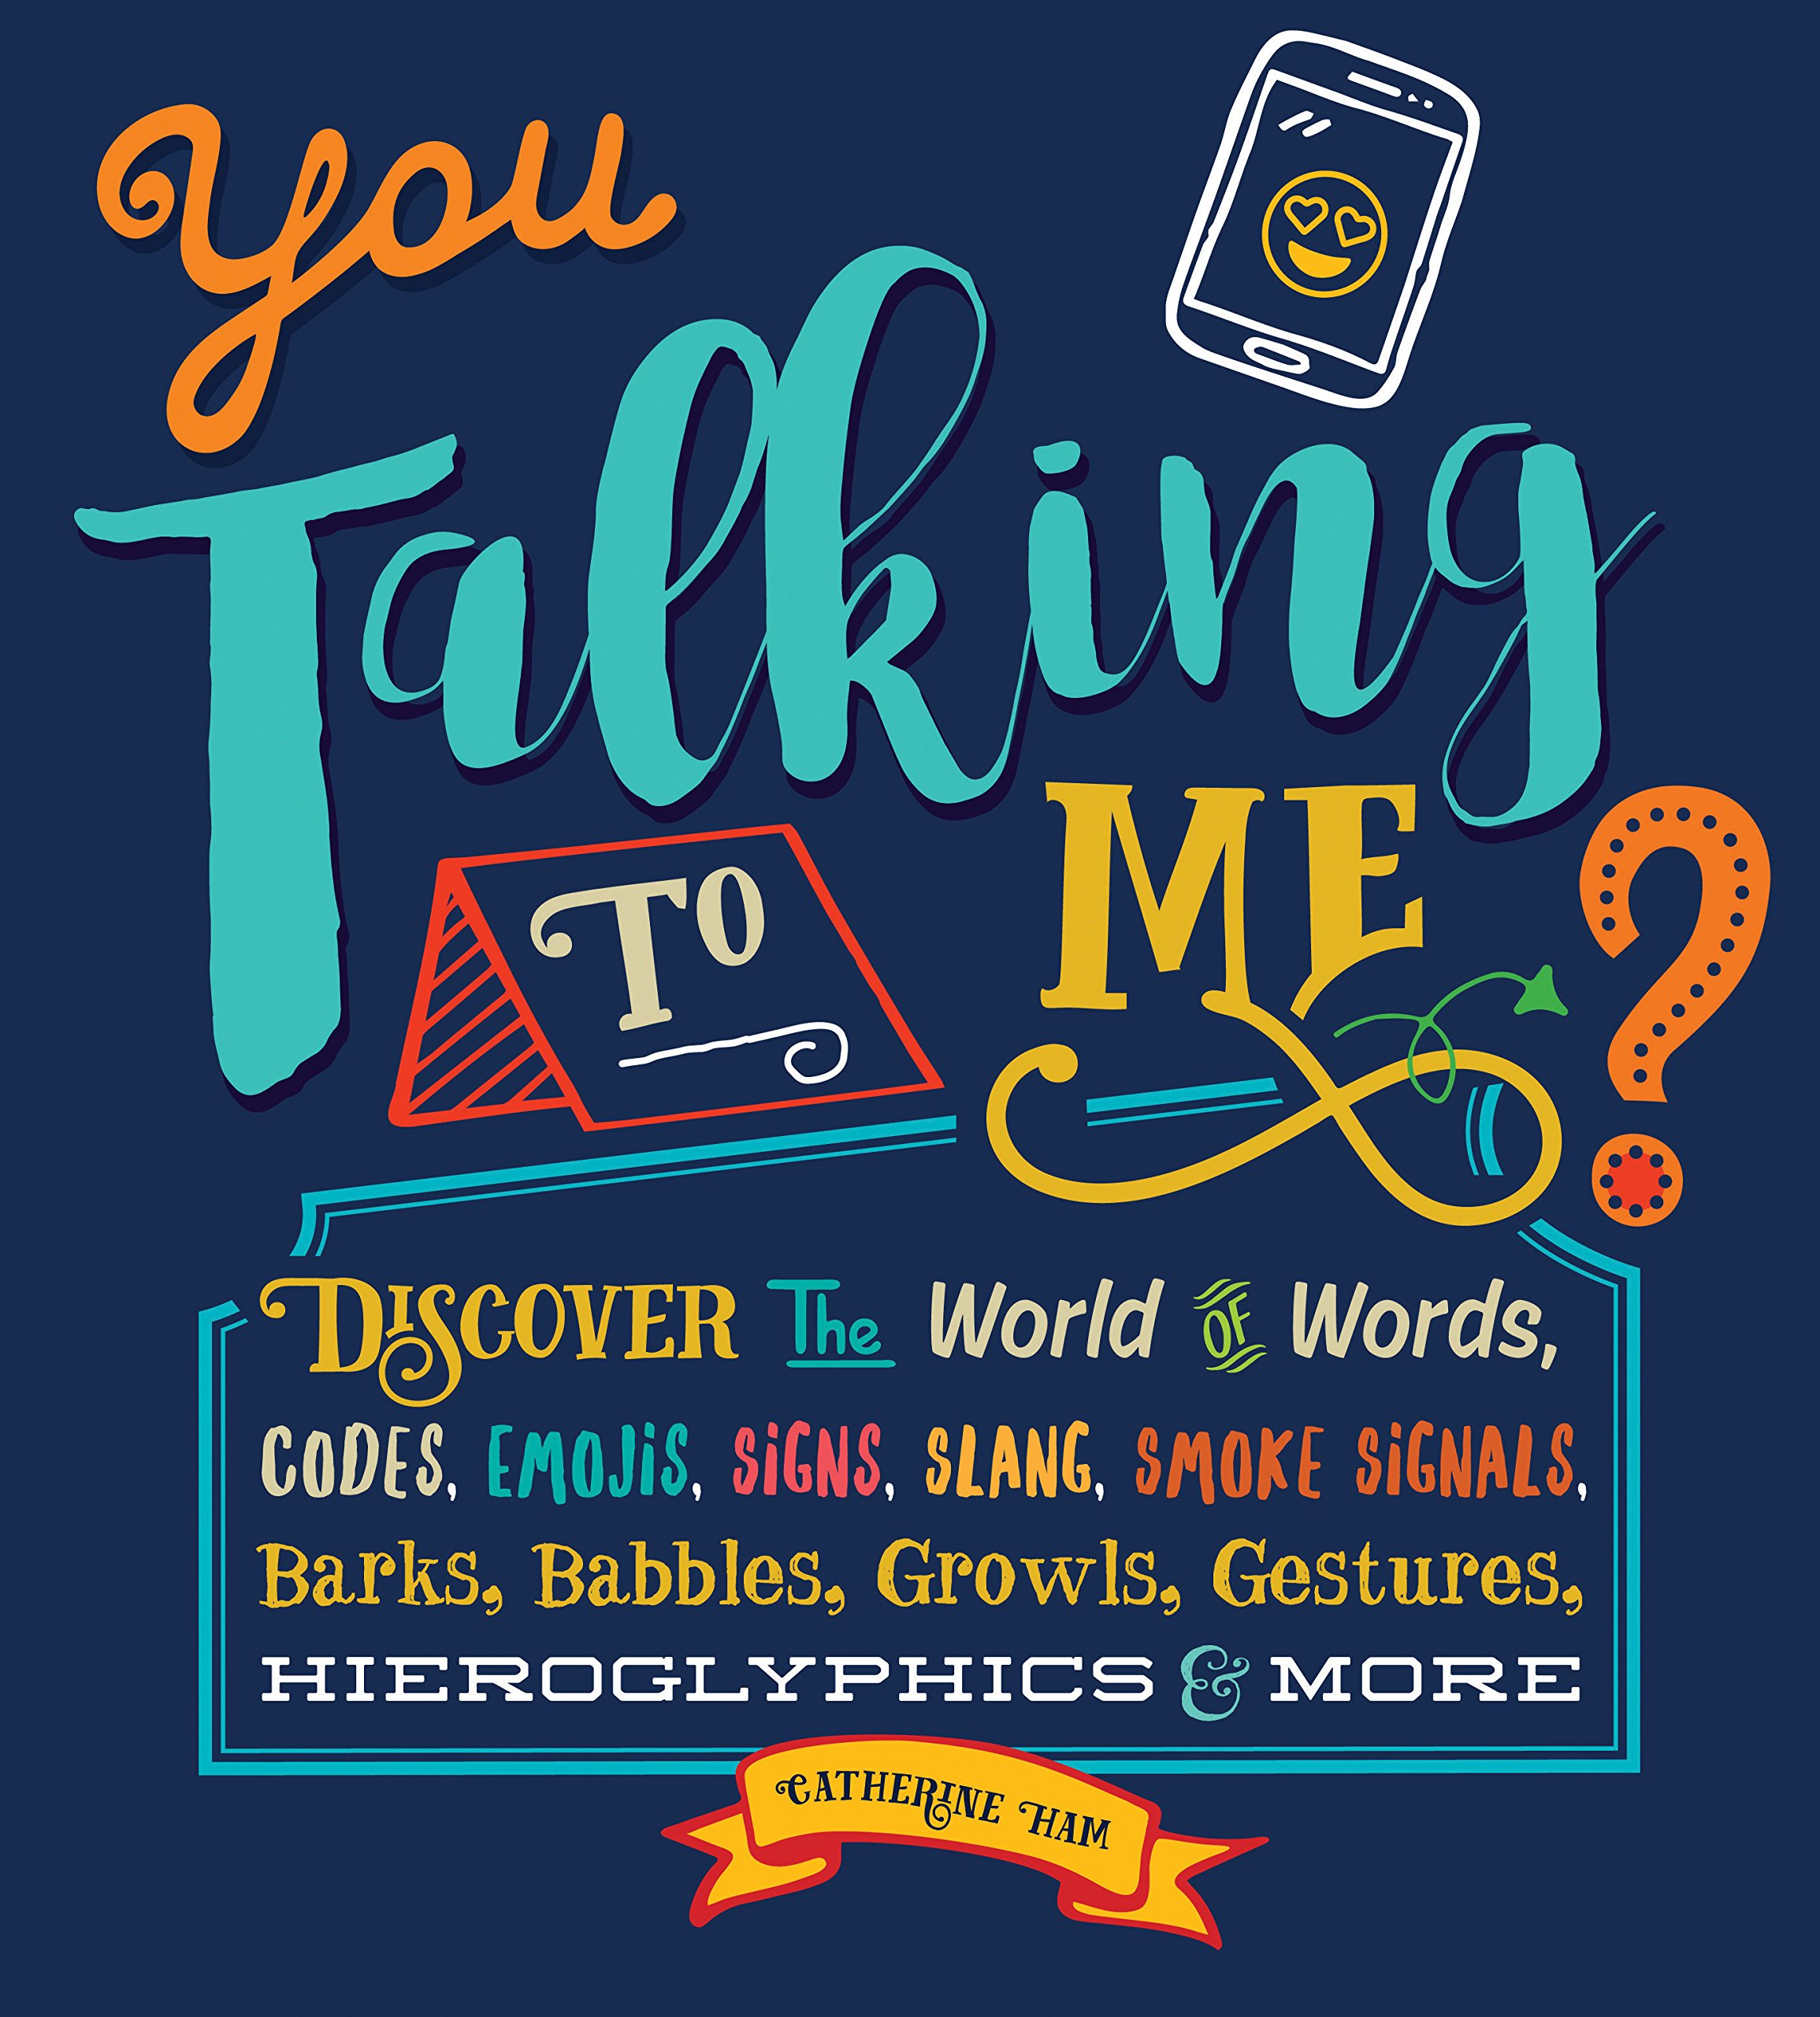 You Talking to Me?: Discover the World of Words, Codes, Emojis, Slang, Smoke Signals, Barks, Babbles, Growls, Gestures, Hieroglyphics and More